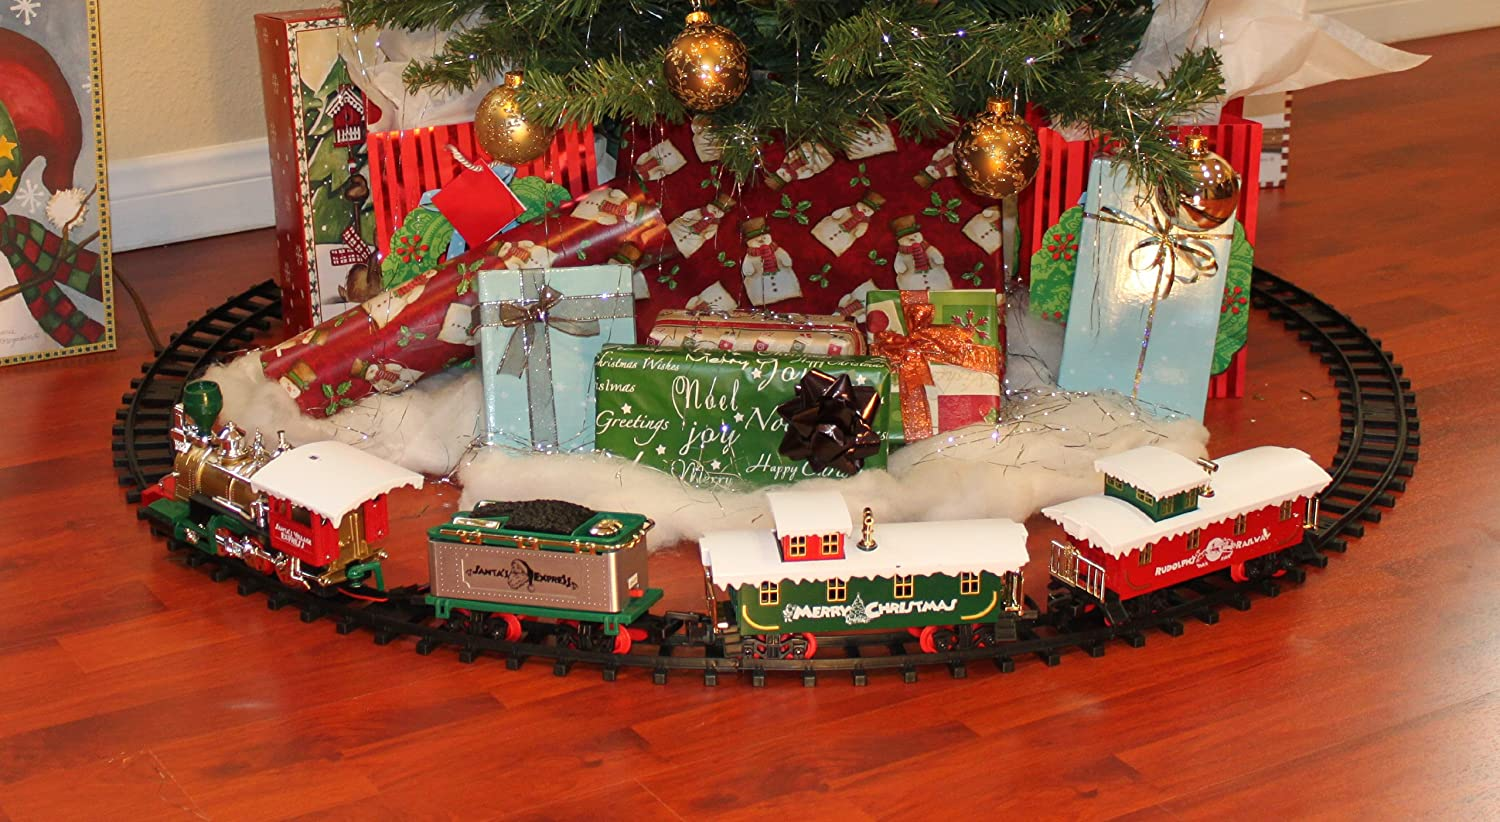 amazoncom toystate santas village express holiday christmas train set toys games